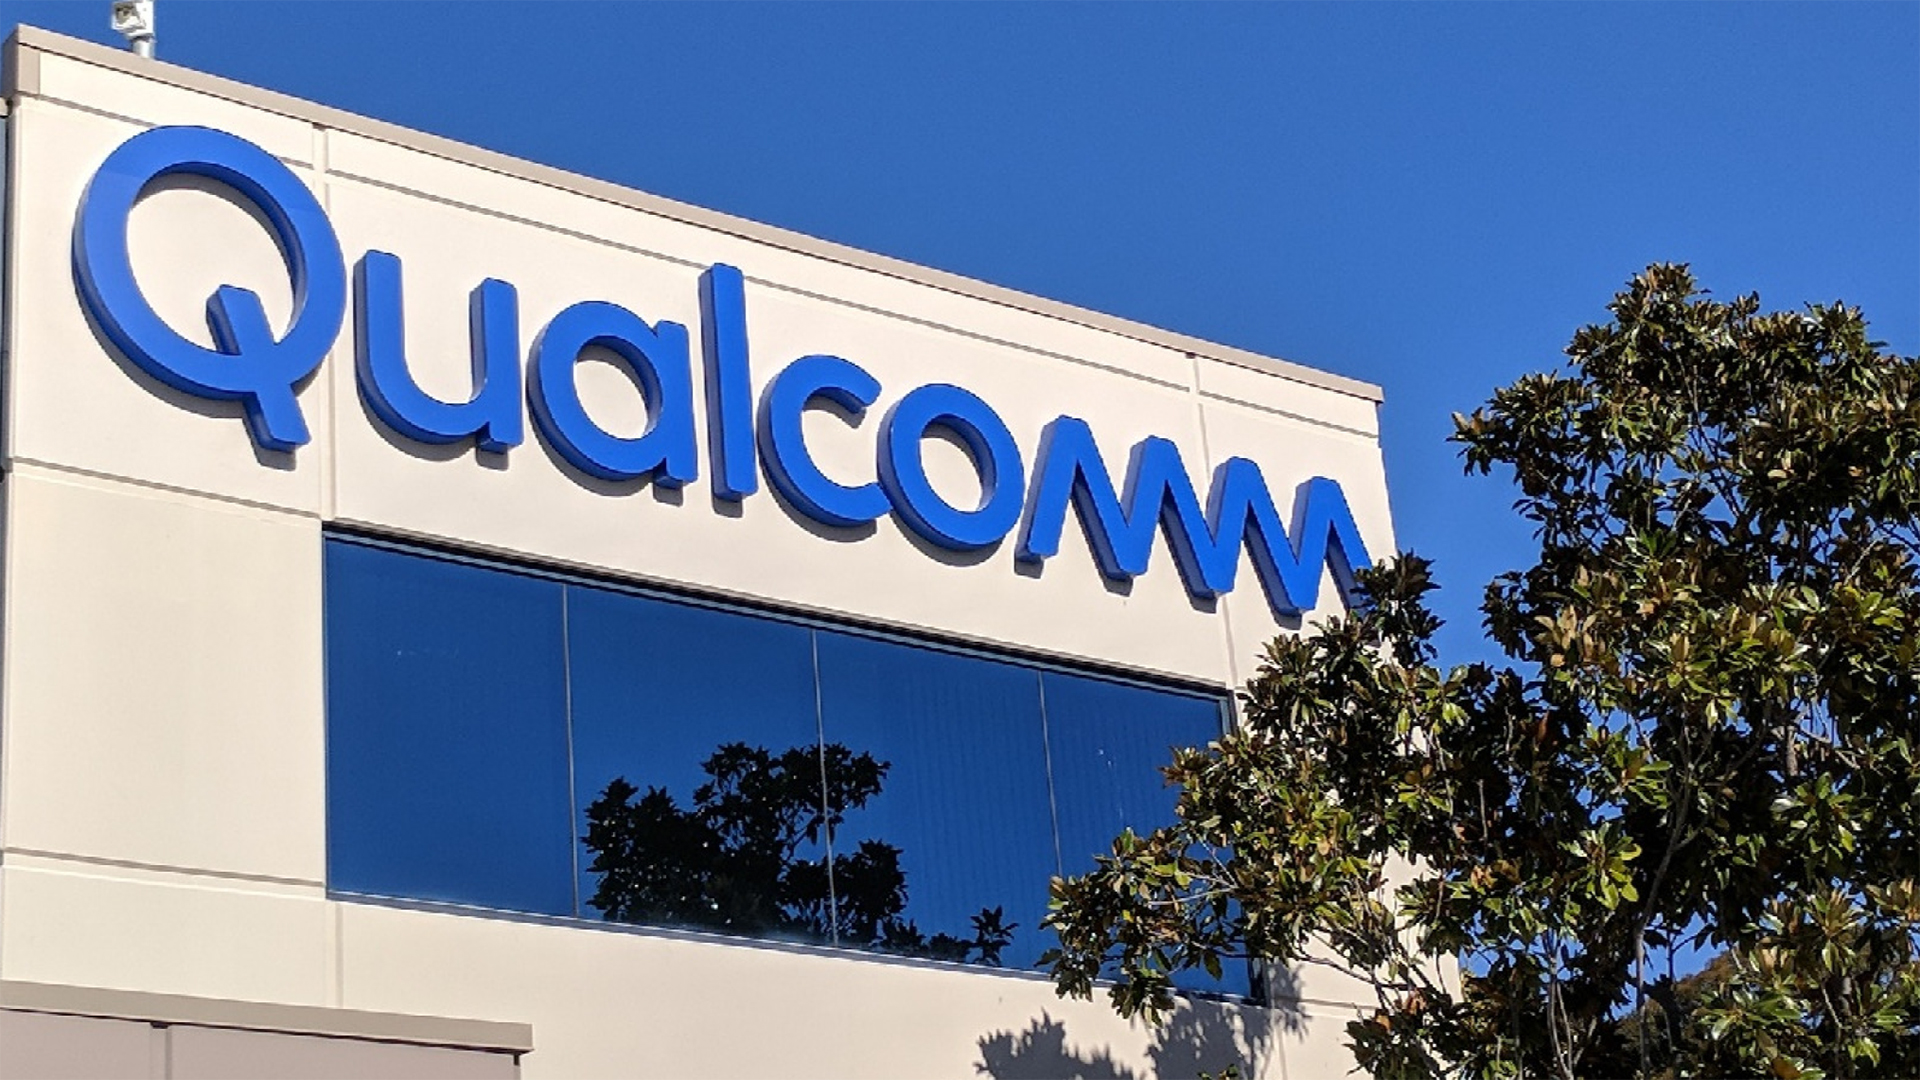 Counterpoint Qualcomm's Results Quantifies Global Handset Slowdown Due To COVID-19, Limited Impact to 5G Expectations